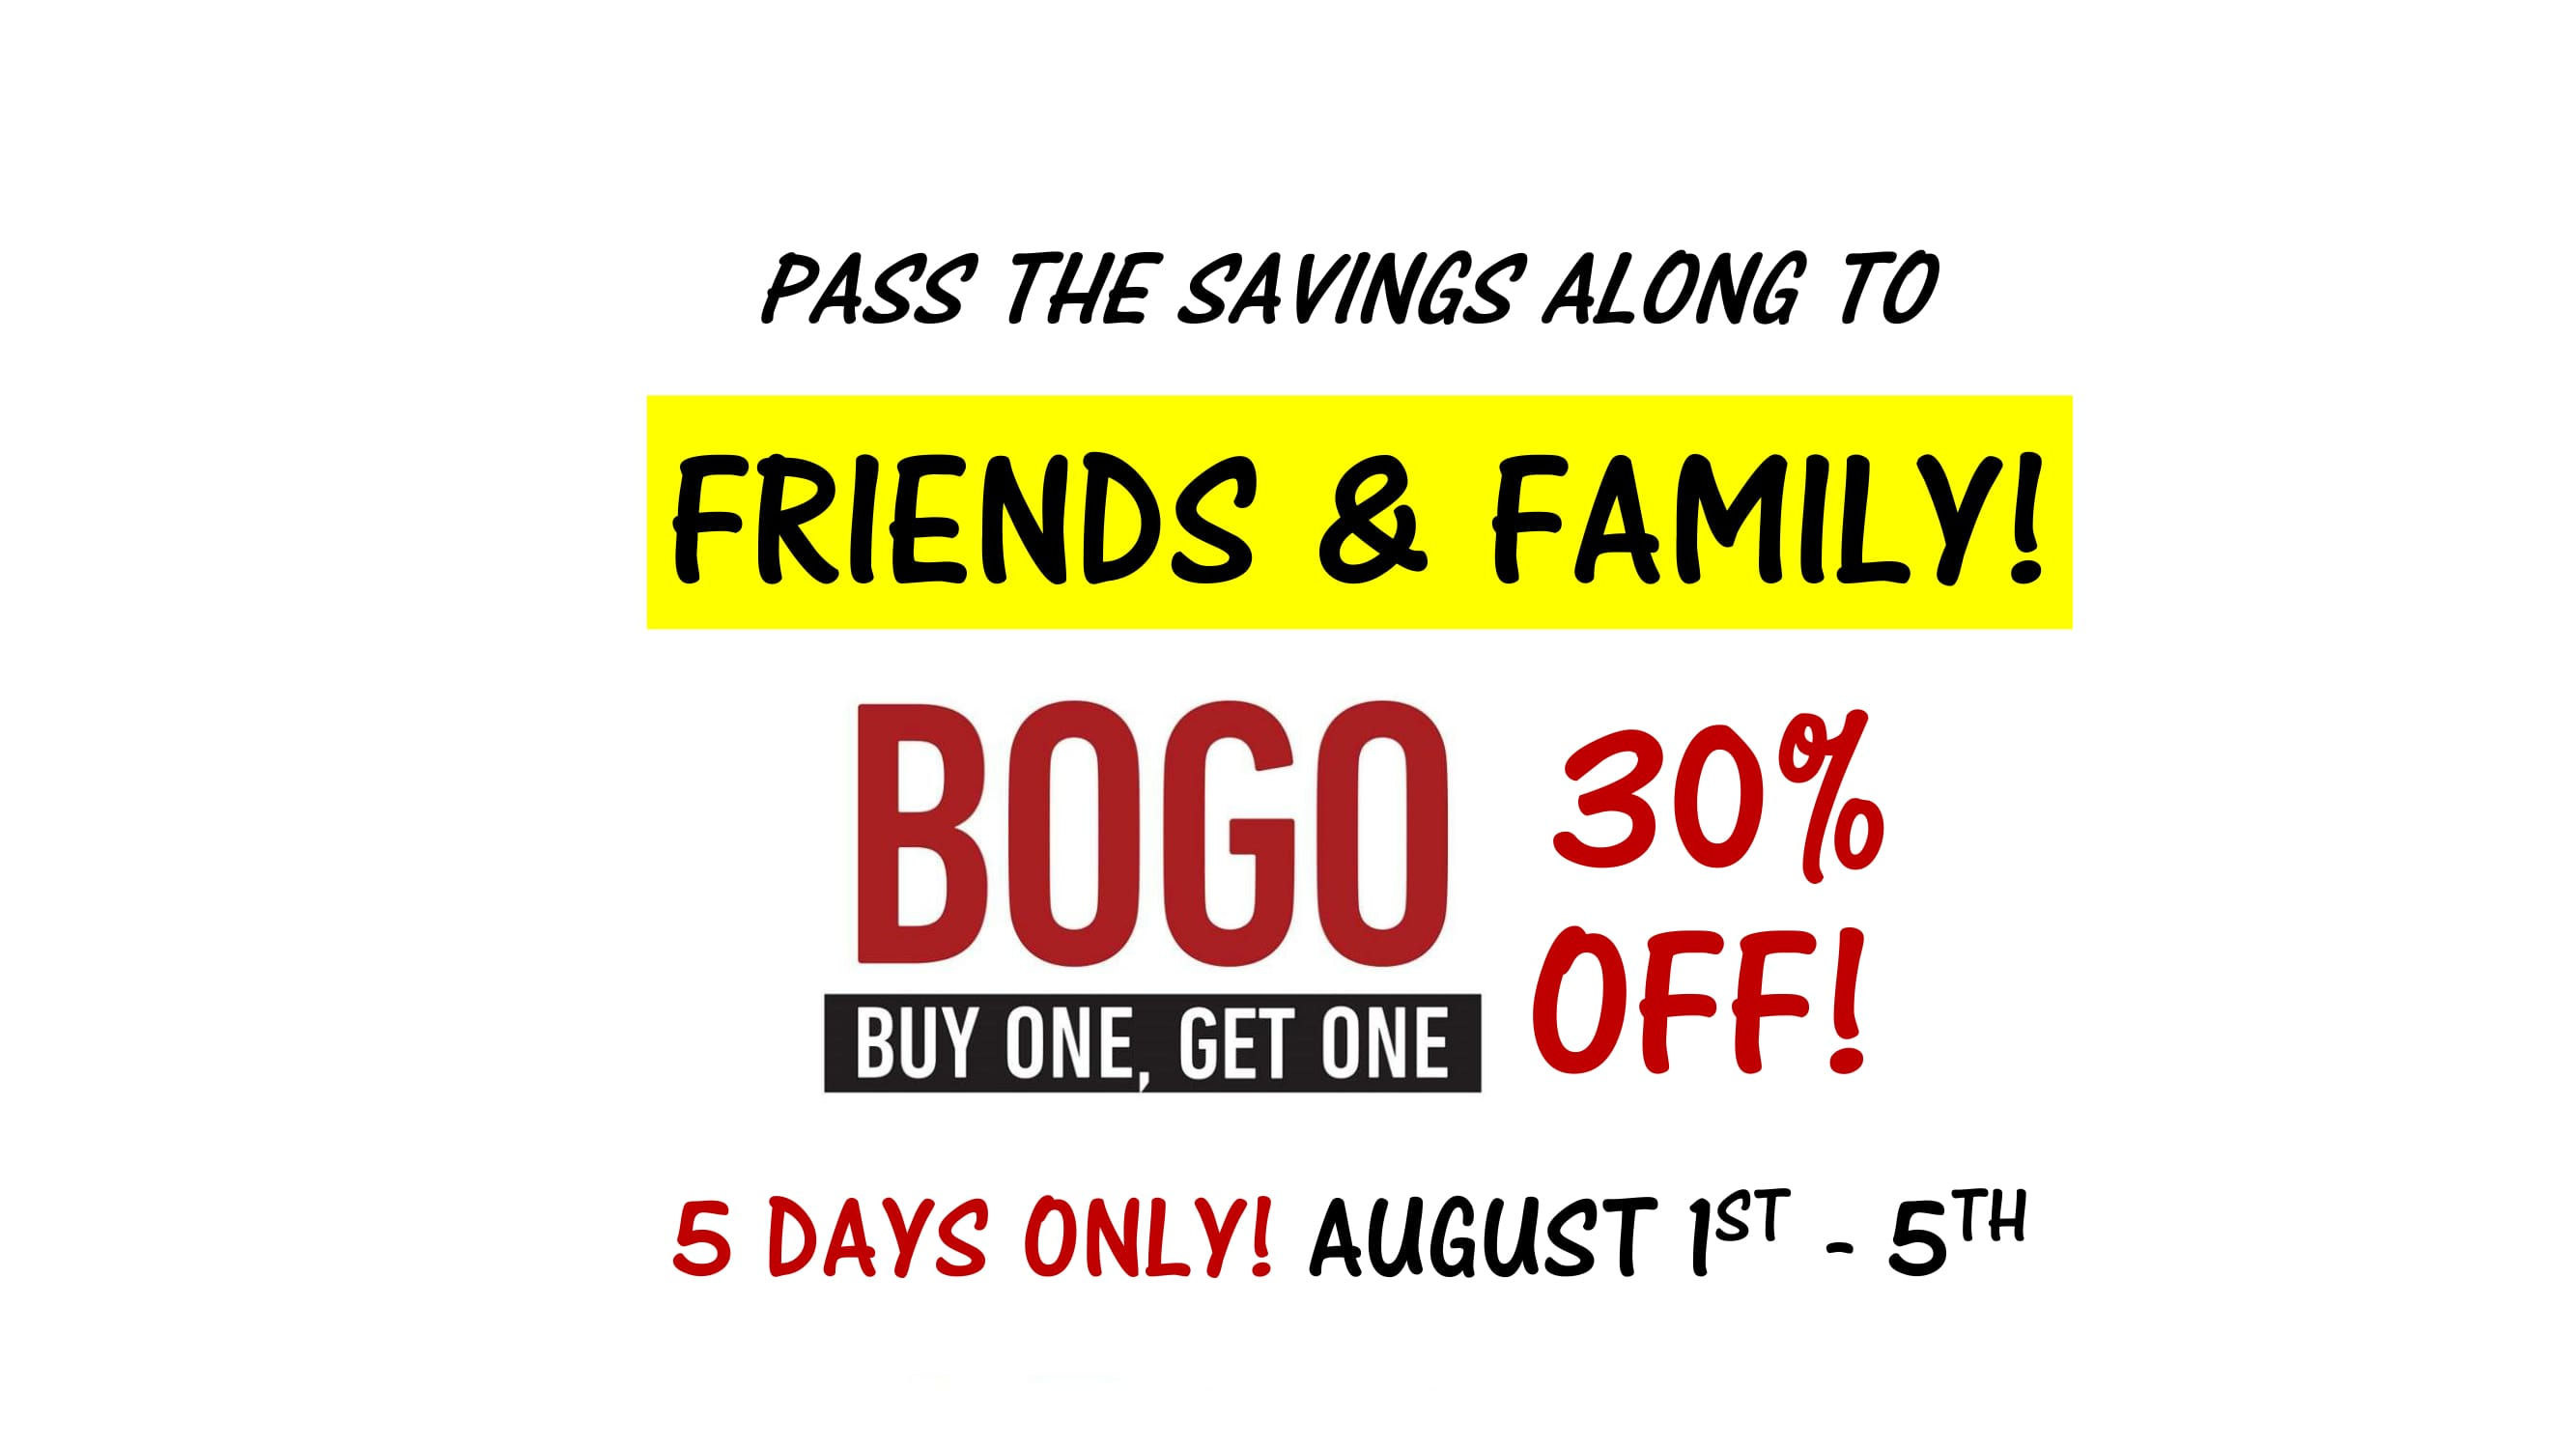 Advertisement banner for a BOGO 30% scooters and power wheelchairs. The first week of August only.